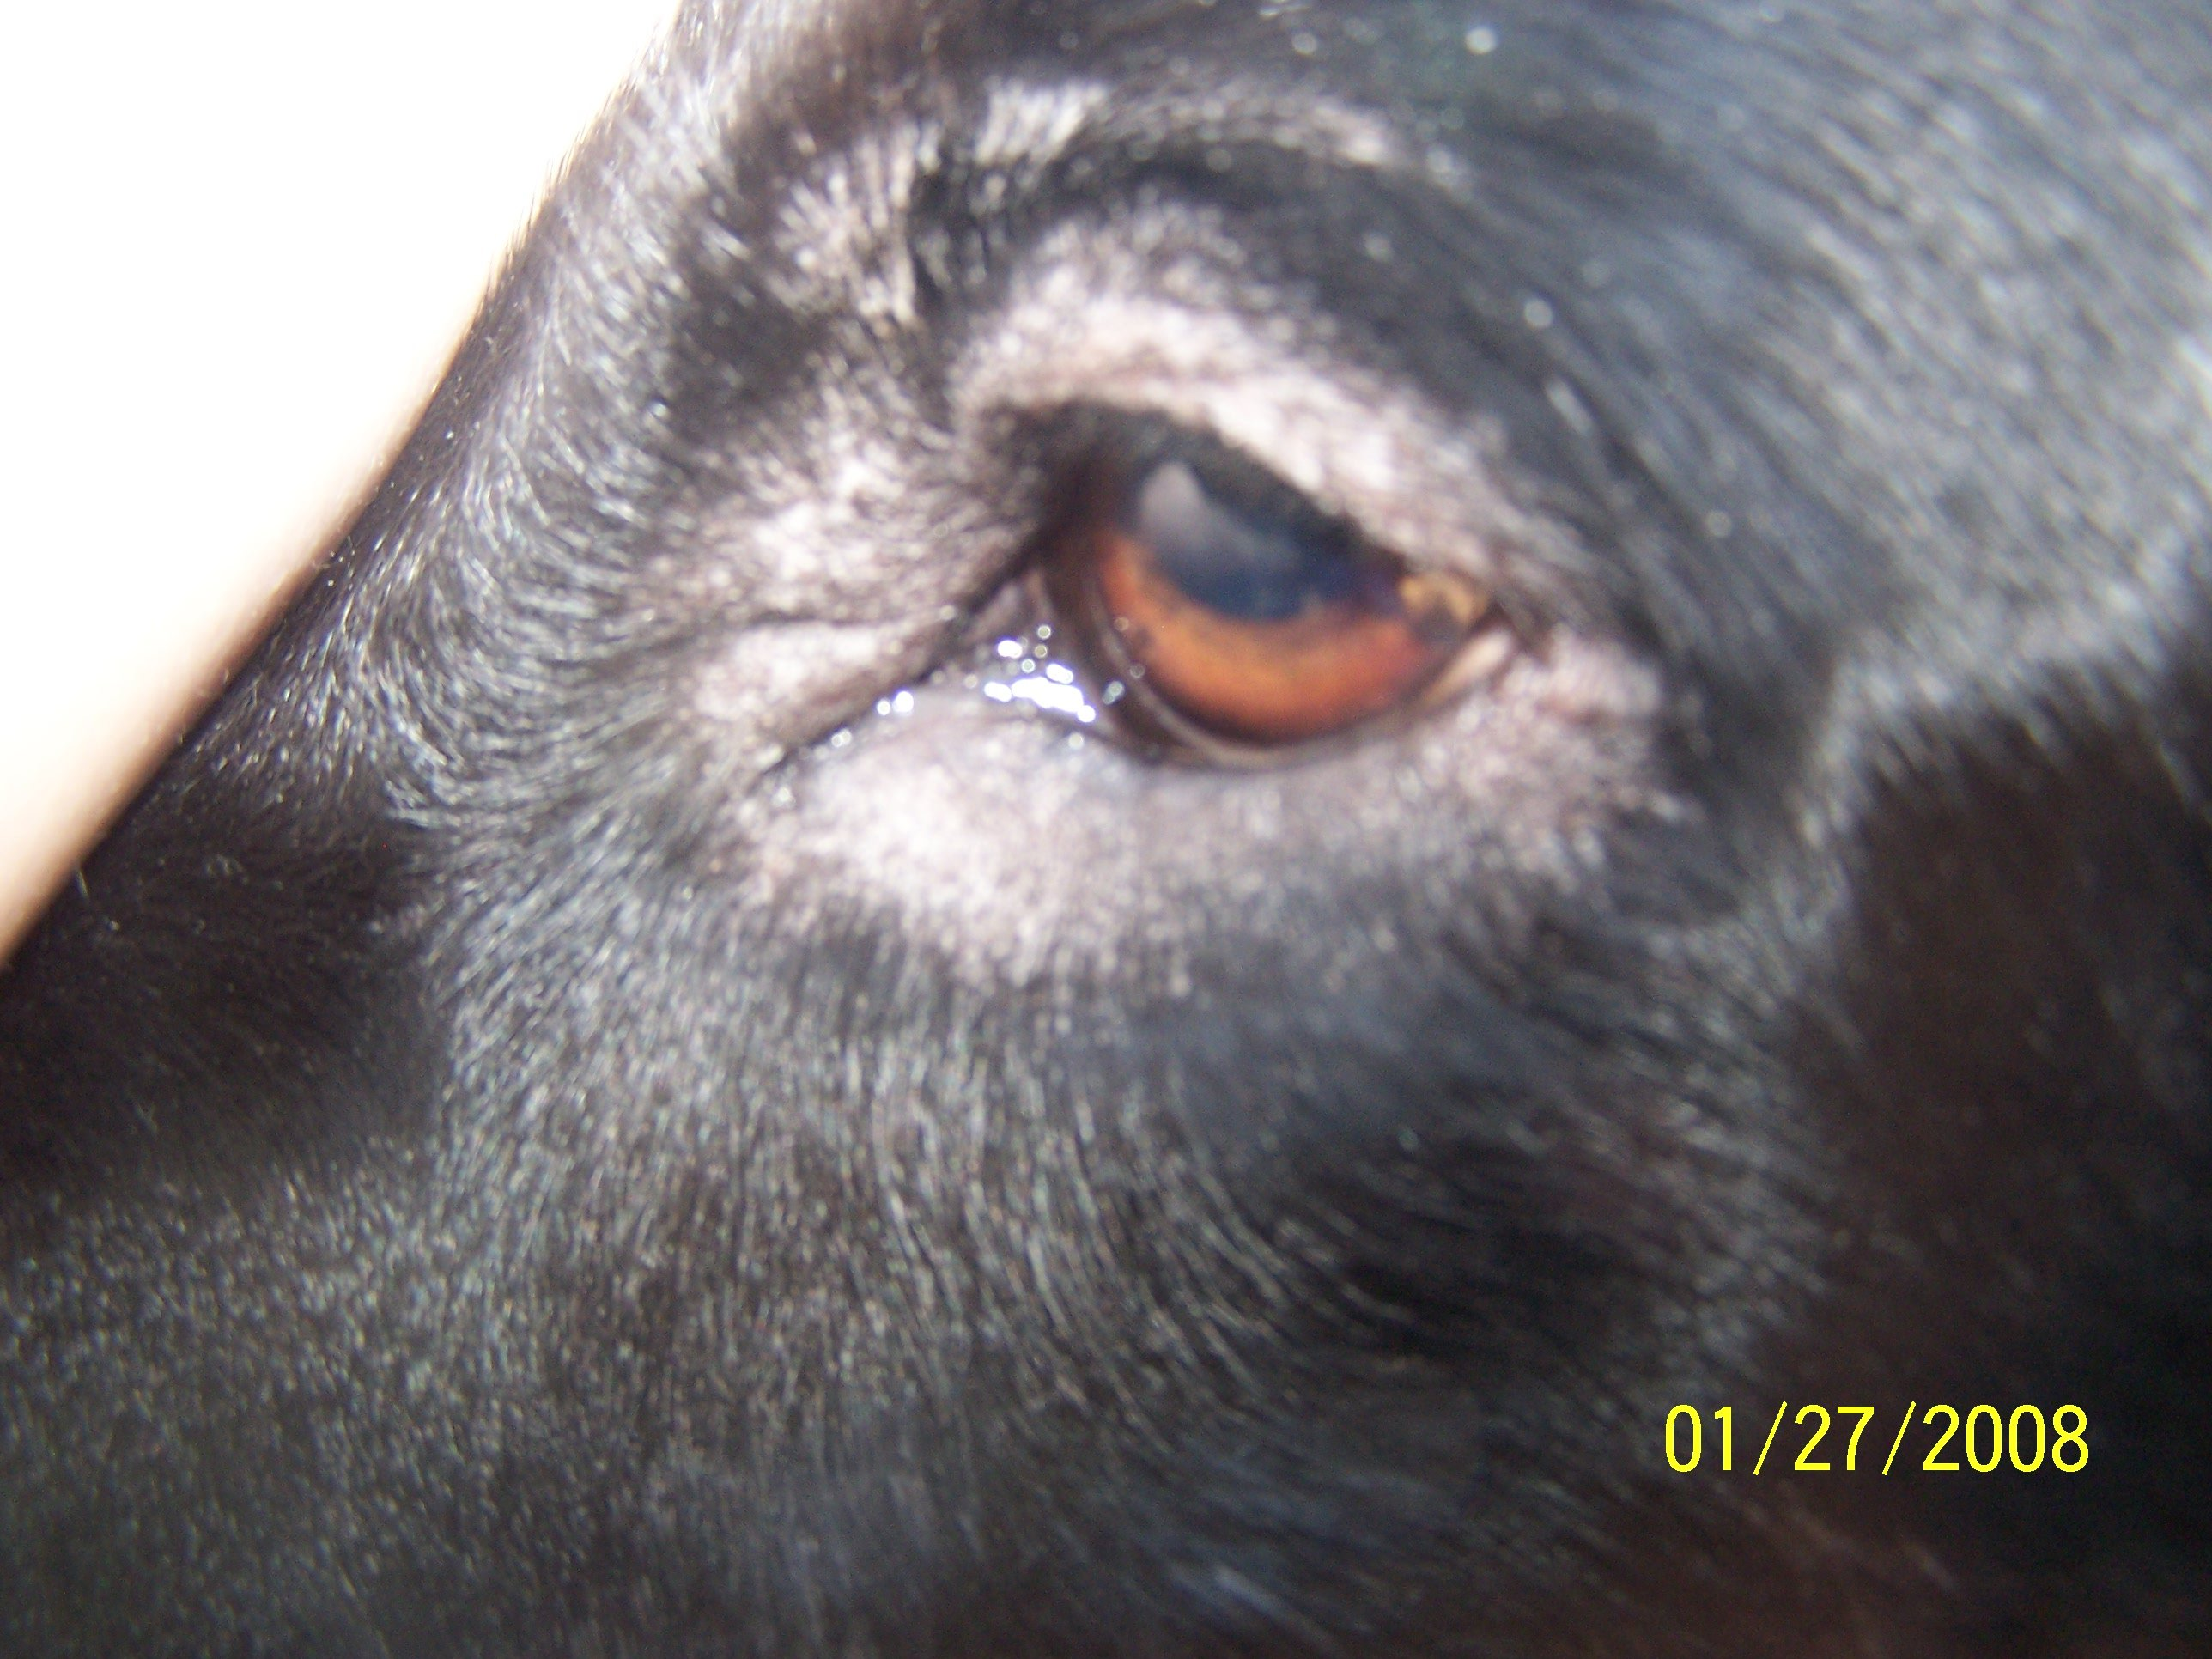 Why has dog started losing hair around his eye?: My dog has